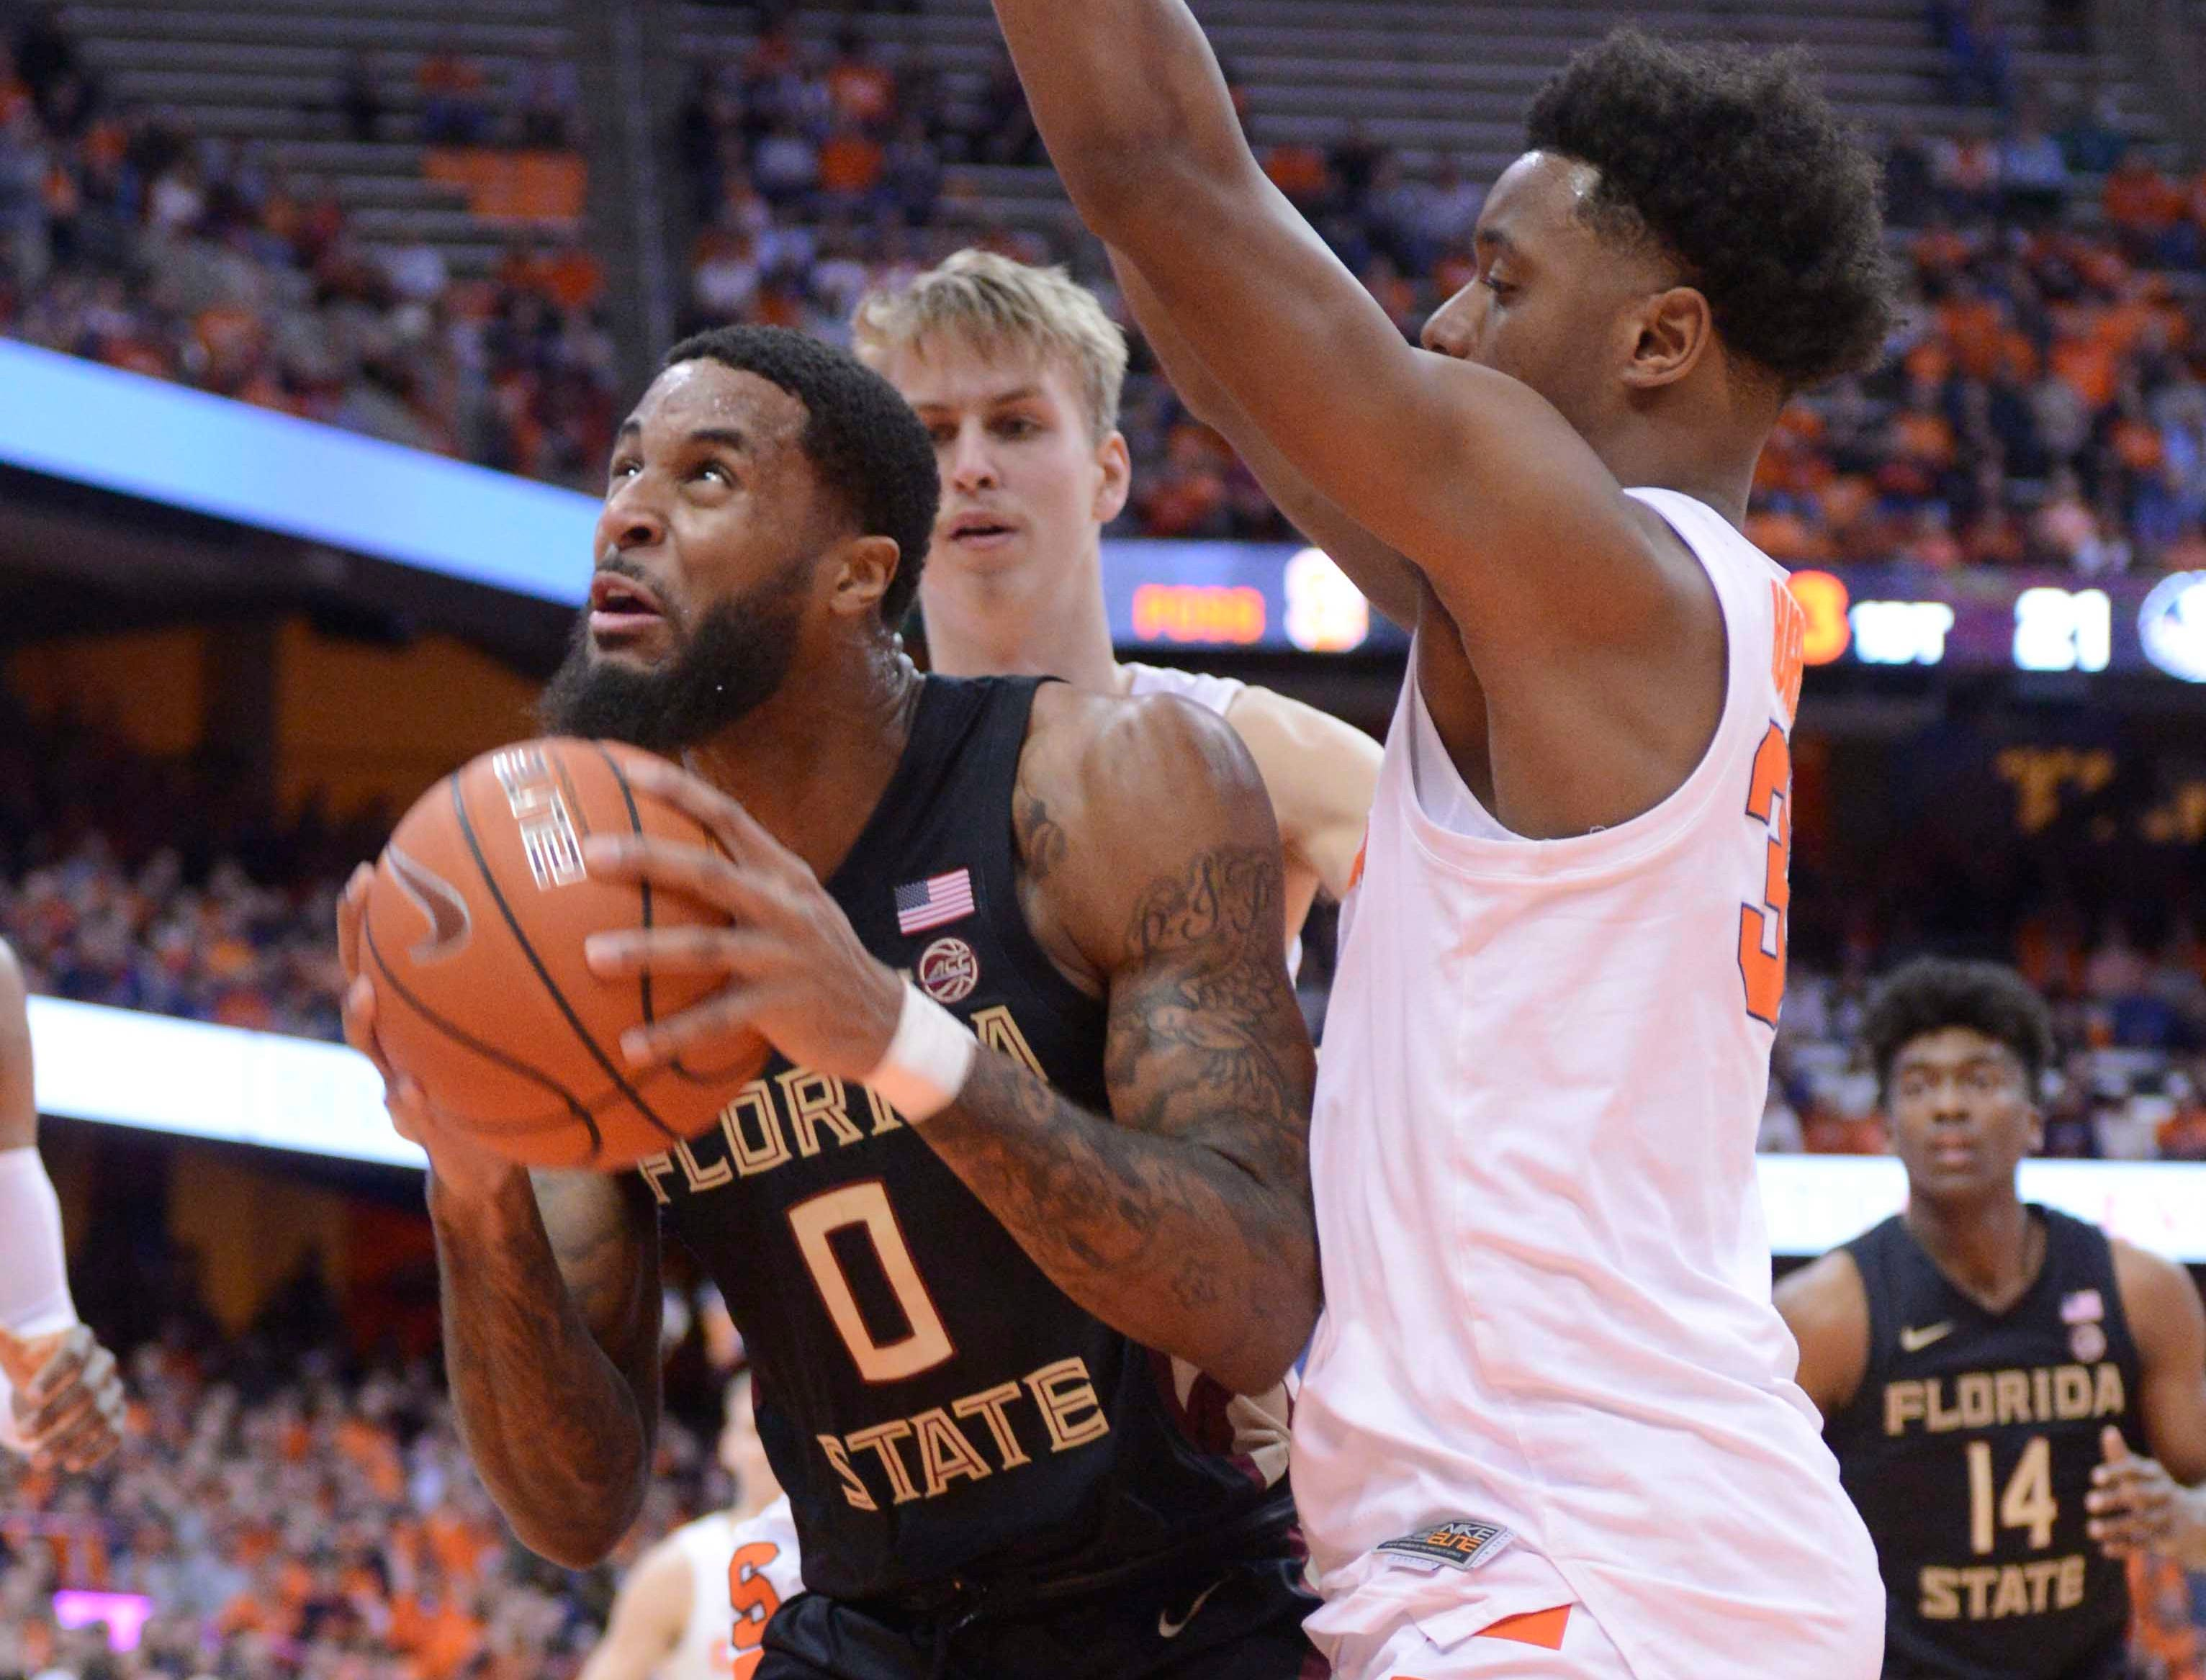 Feb 5, 2019; Syracuse, NY, USA; Florida State Seminoles forward Phil Cofer (0) looks to take a shot as Syracuse Orange forward Elijah Hughes (right) defends in the first half at the Carrier Dome. Mandatory Credit: Mark Konezny-USA TODAY Sports